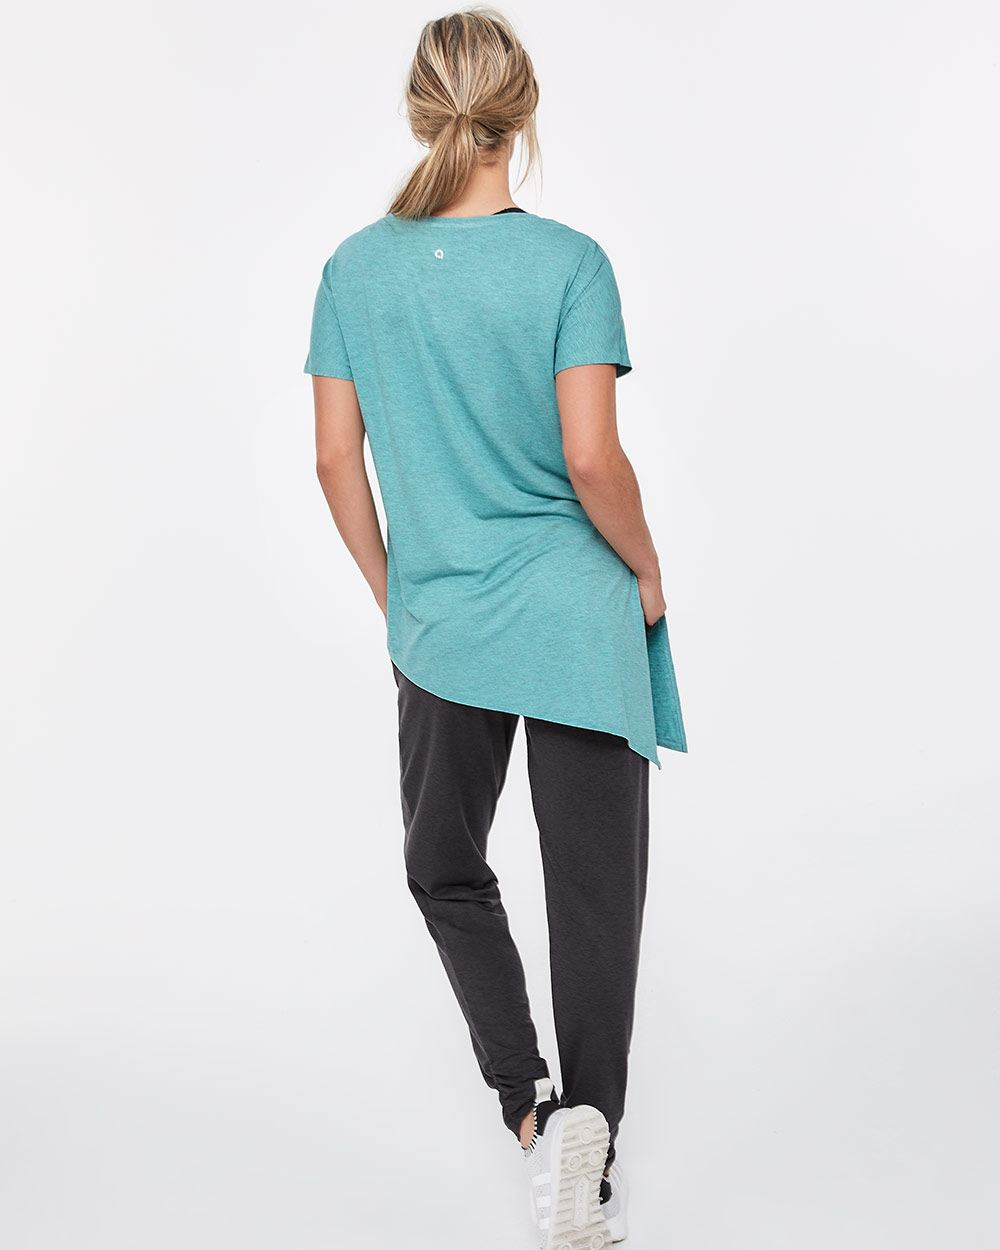 Hyba Asymmetrical Hem Short Sleeve Tee